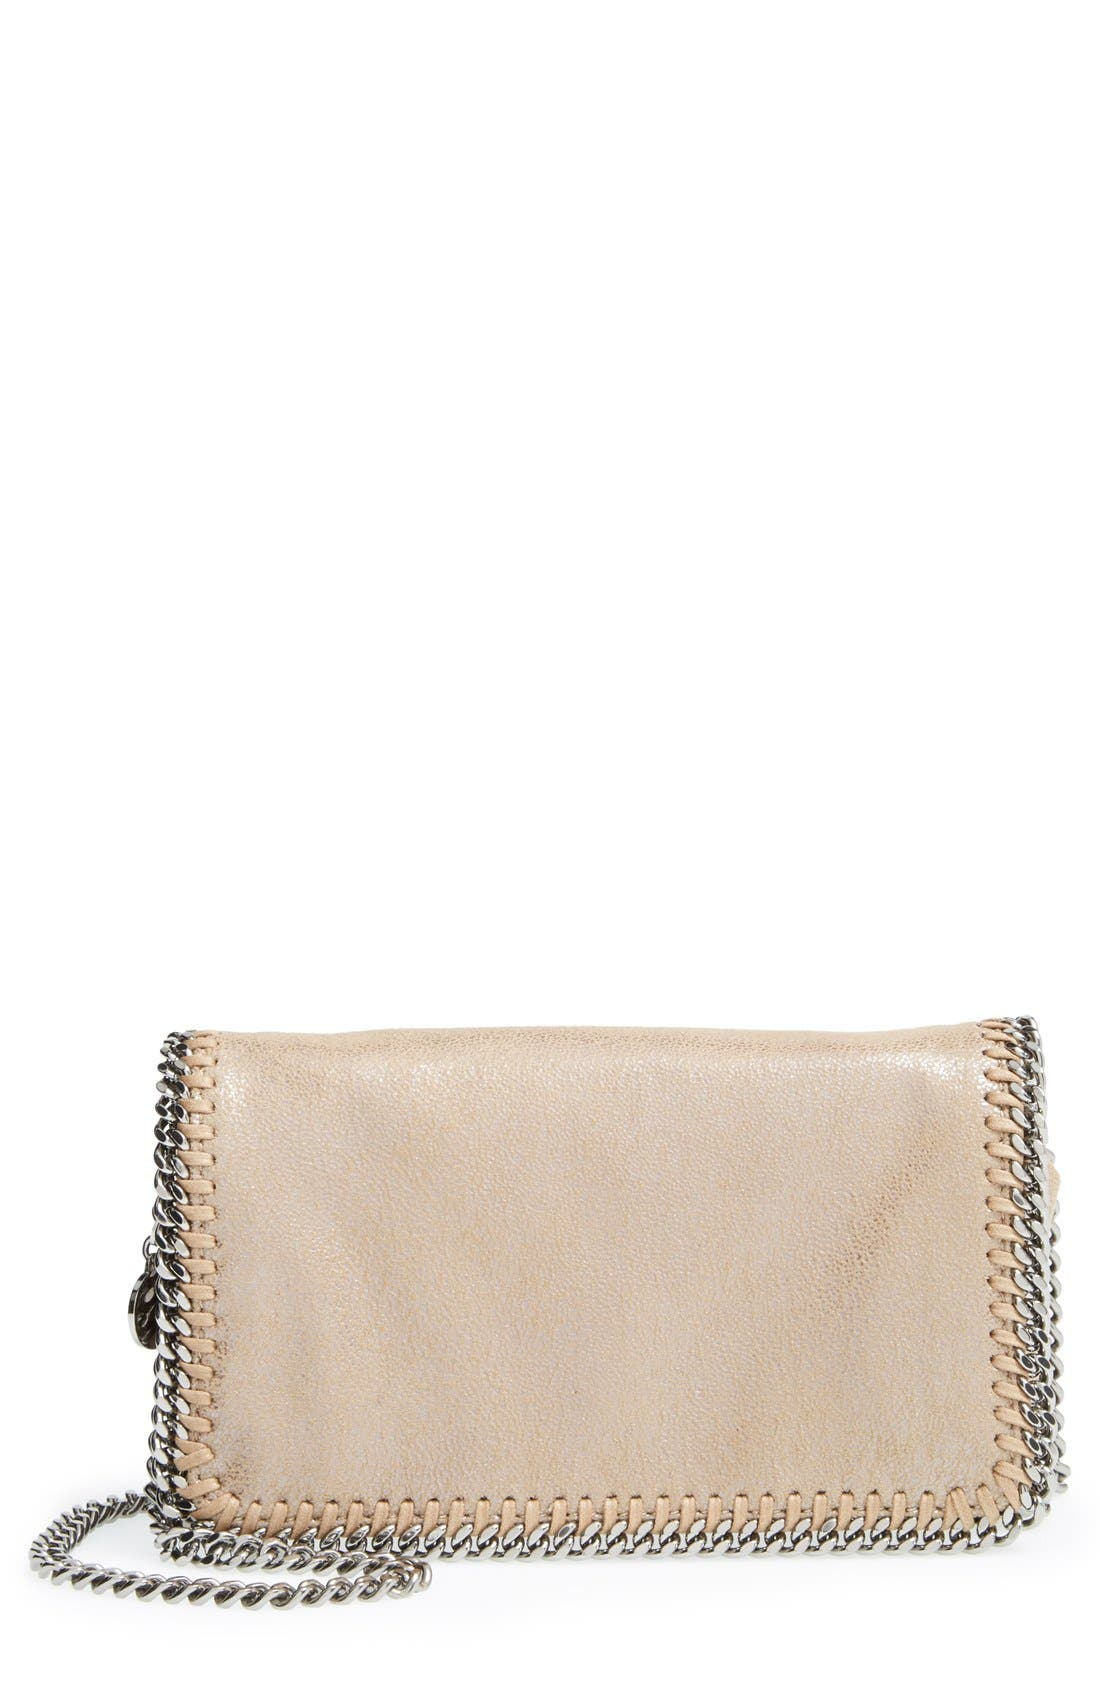 Alternate Image 1 Selected - Stella McCartney 'Falabella' Crossbody Bag